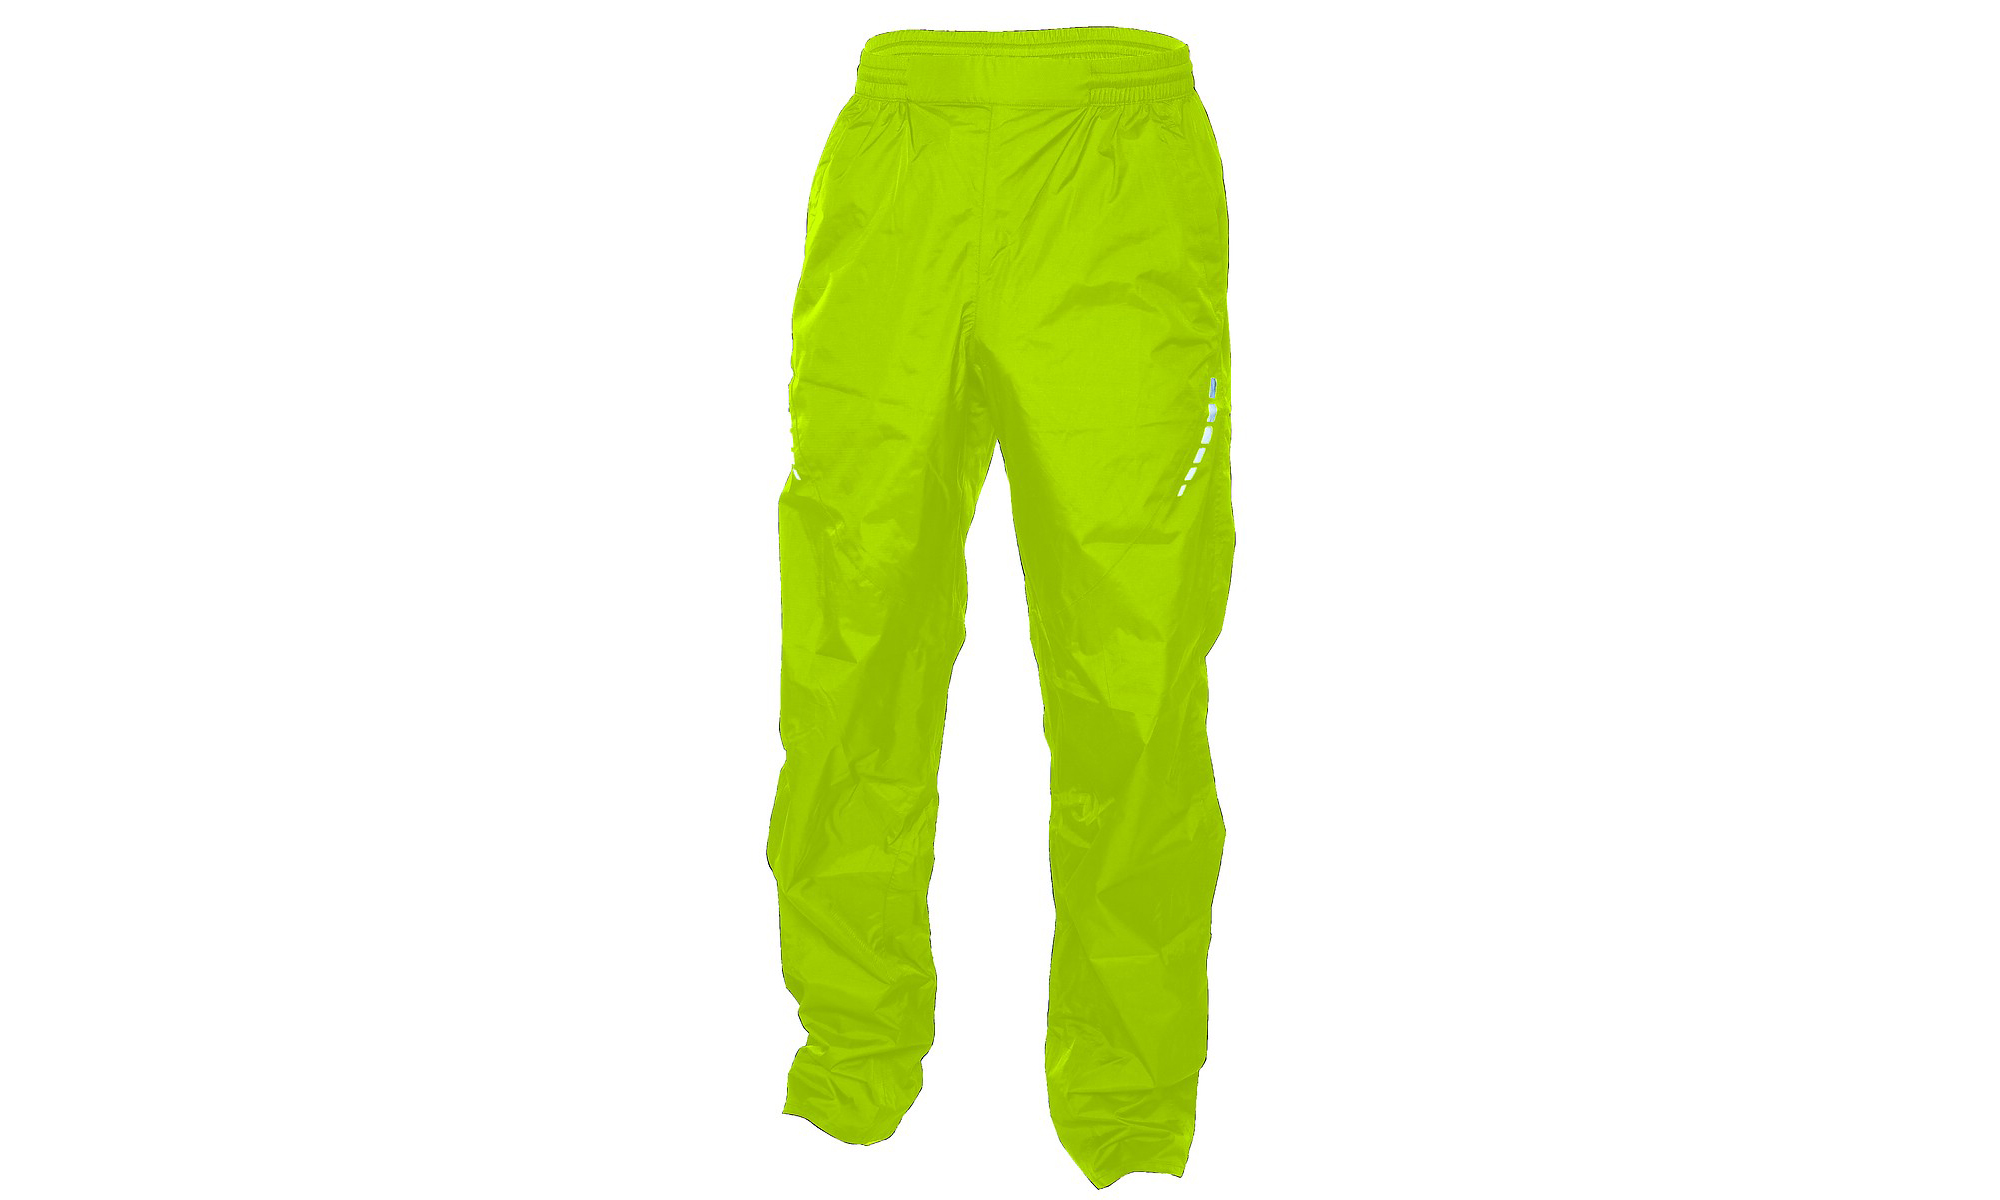 APURA Regenhose Commuting lime